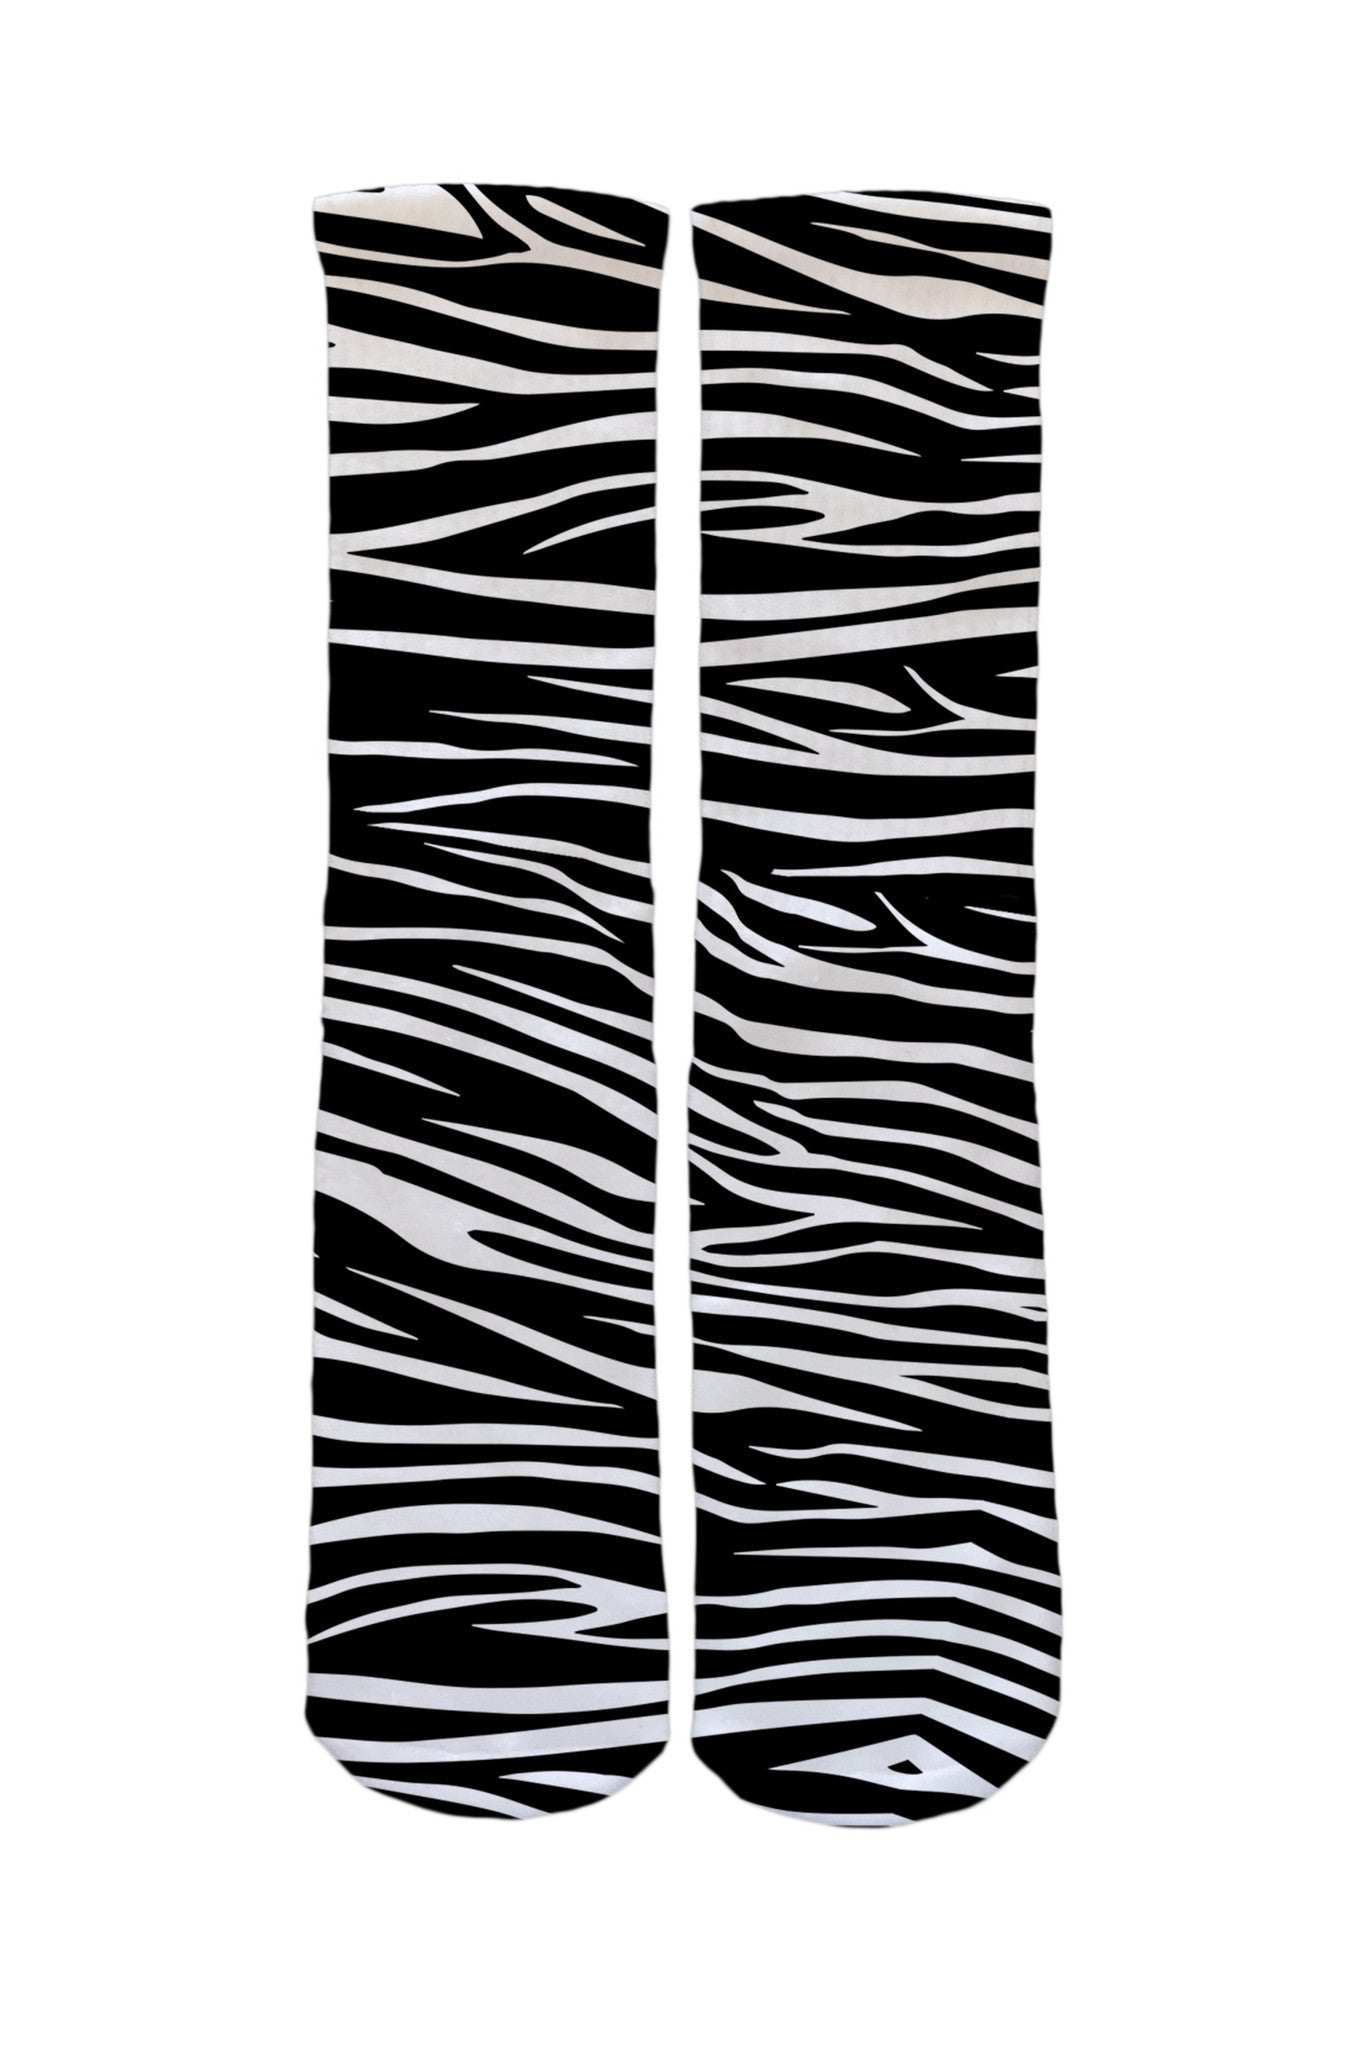 Black & White Tiger Stripes